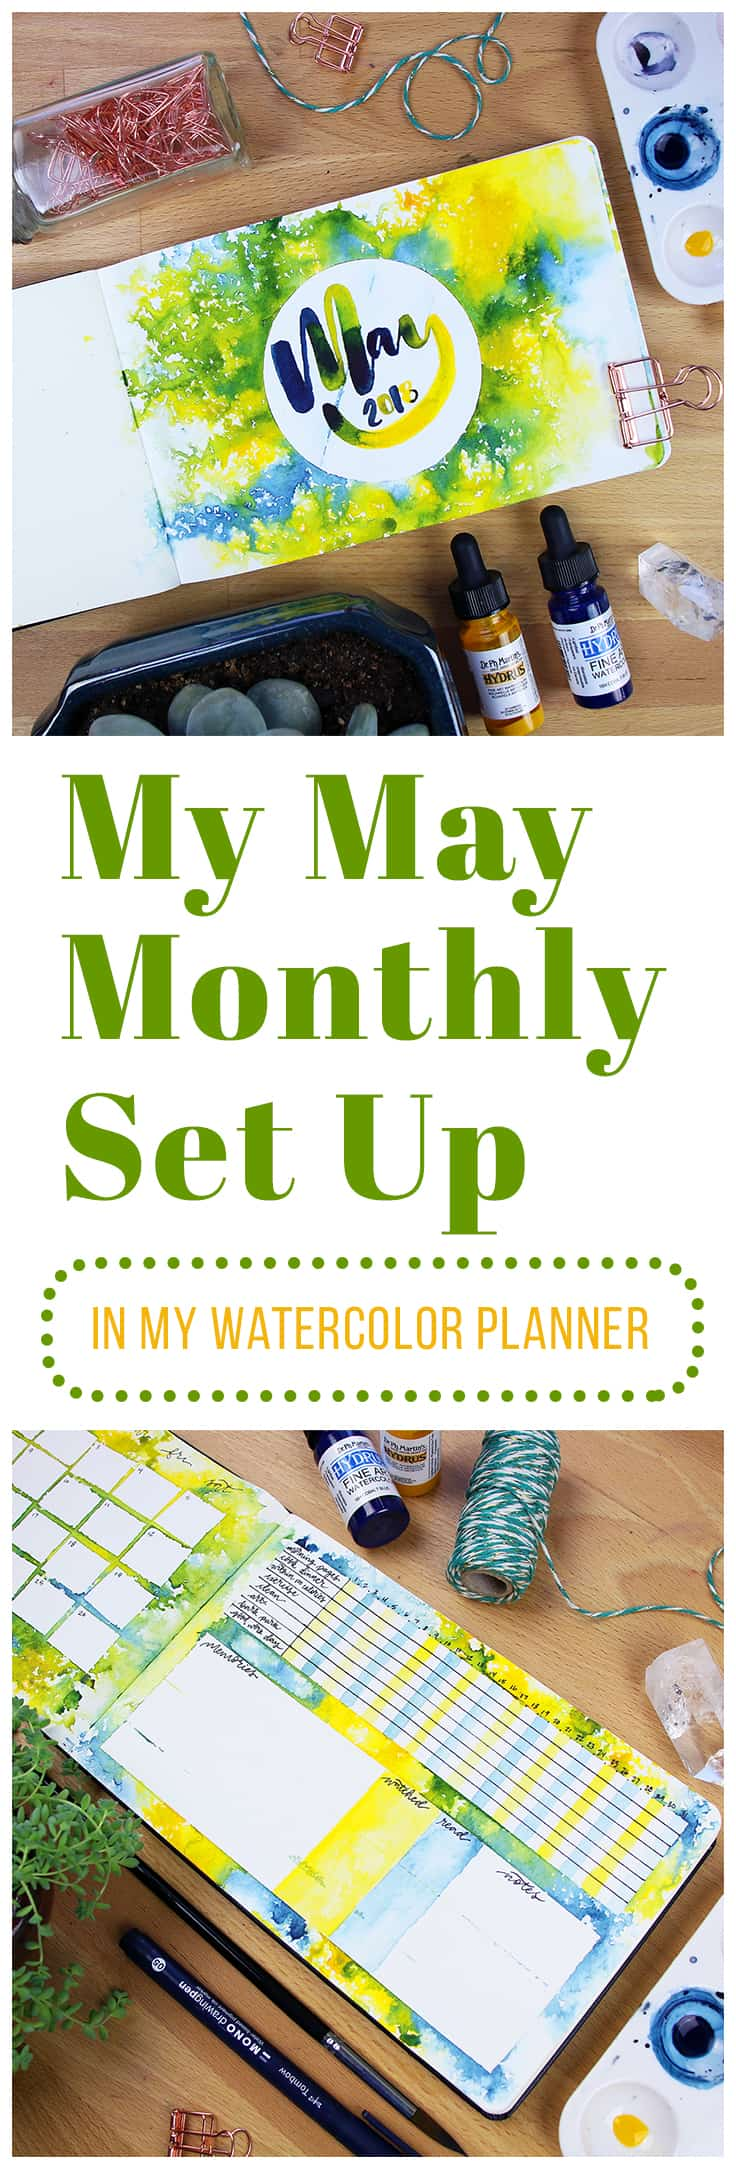 At last, it's May! I try out a new watercolor technique in my May monthly set up and try to bring the vibrant joy of early summer into the design. This technique is so easy that anyone can do it!